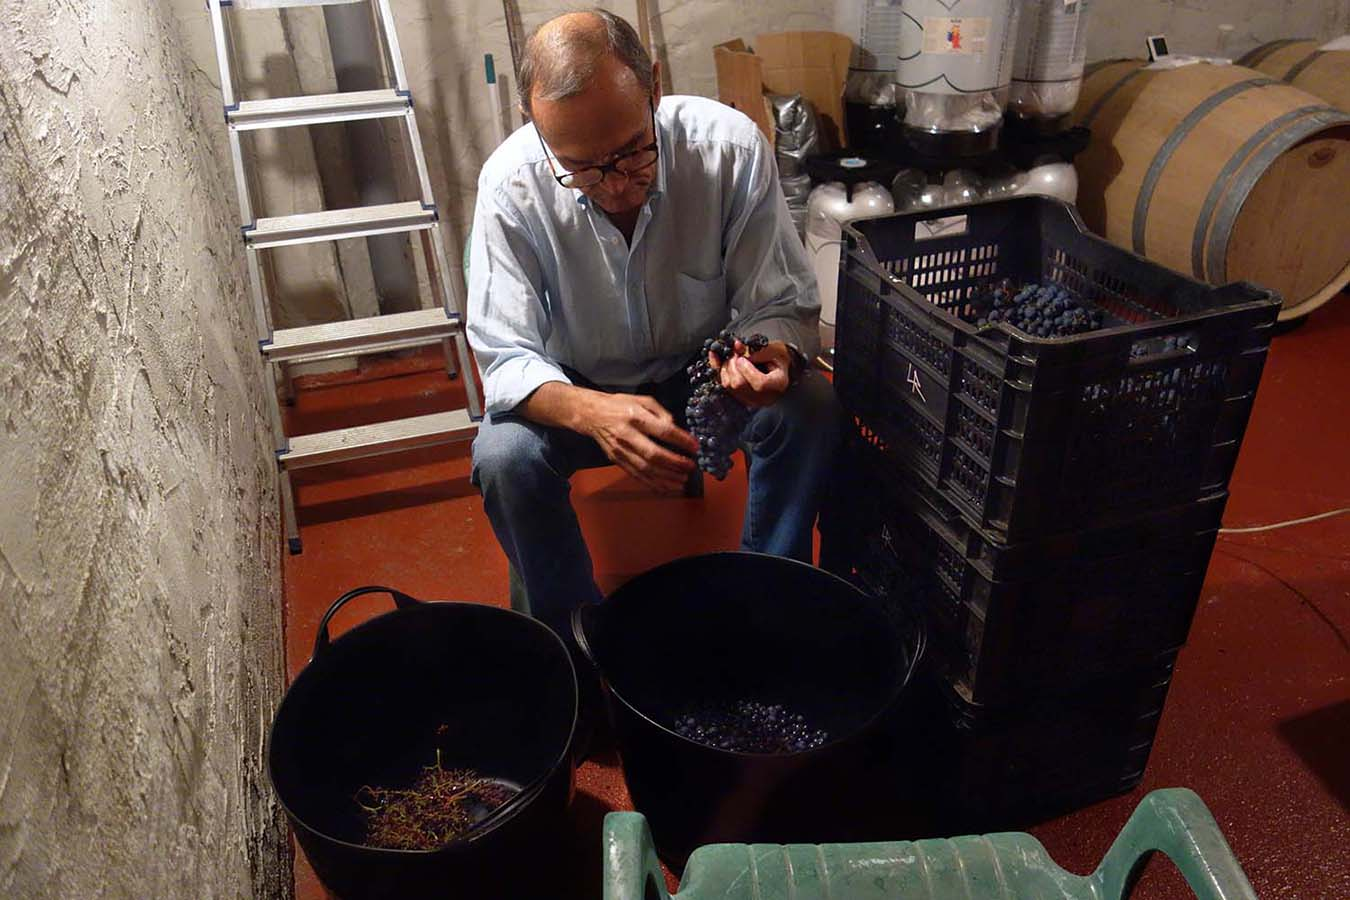 Hugo's dad helping with the winemaking